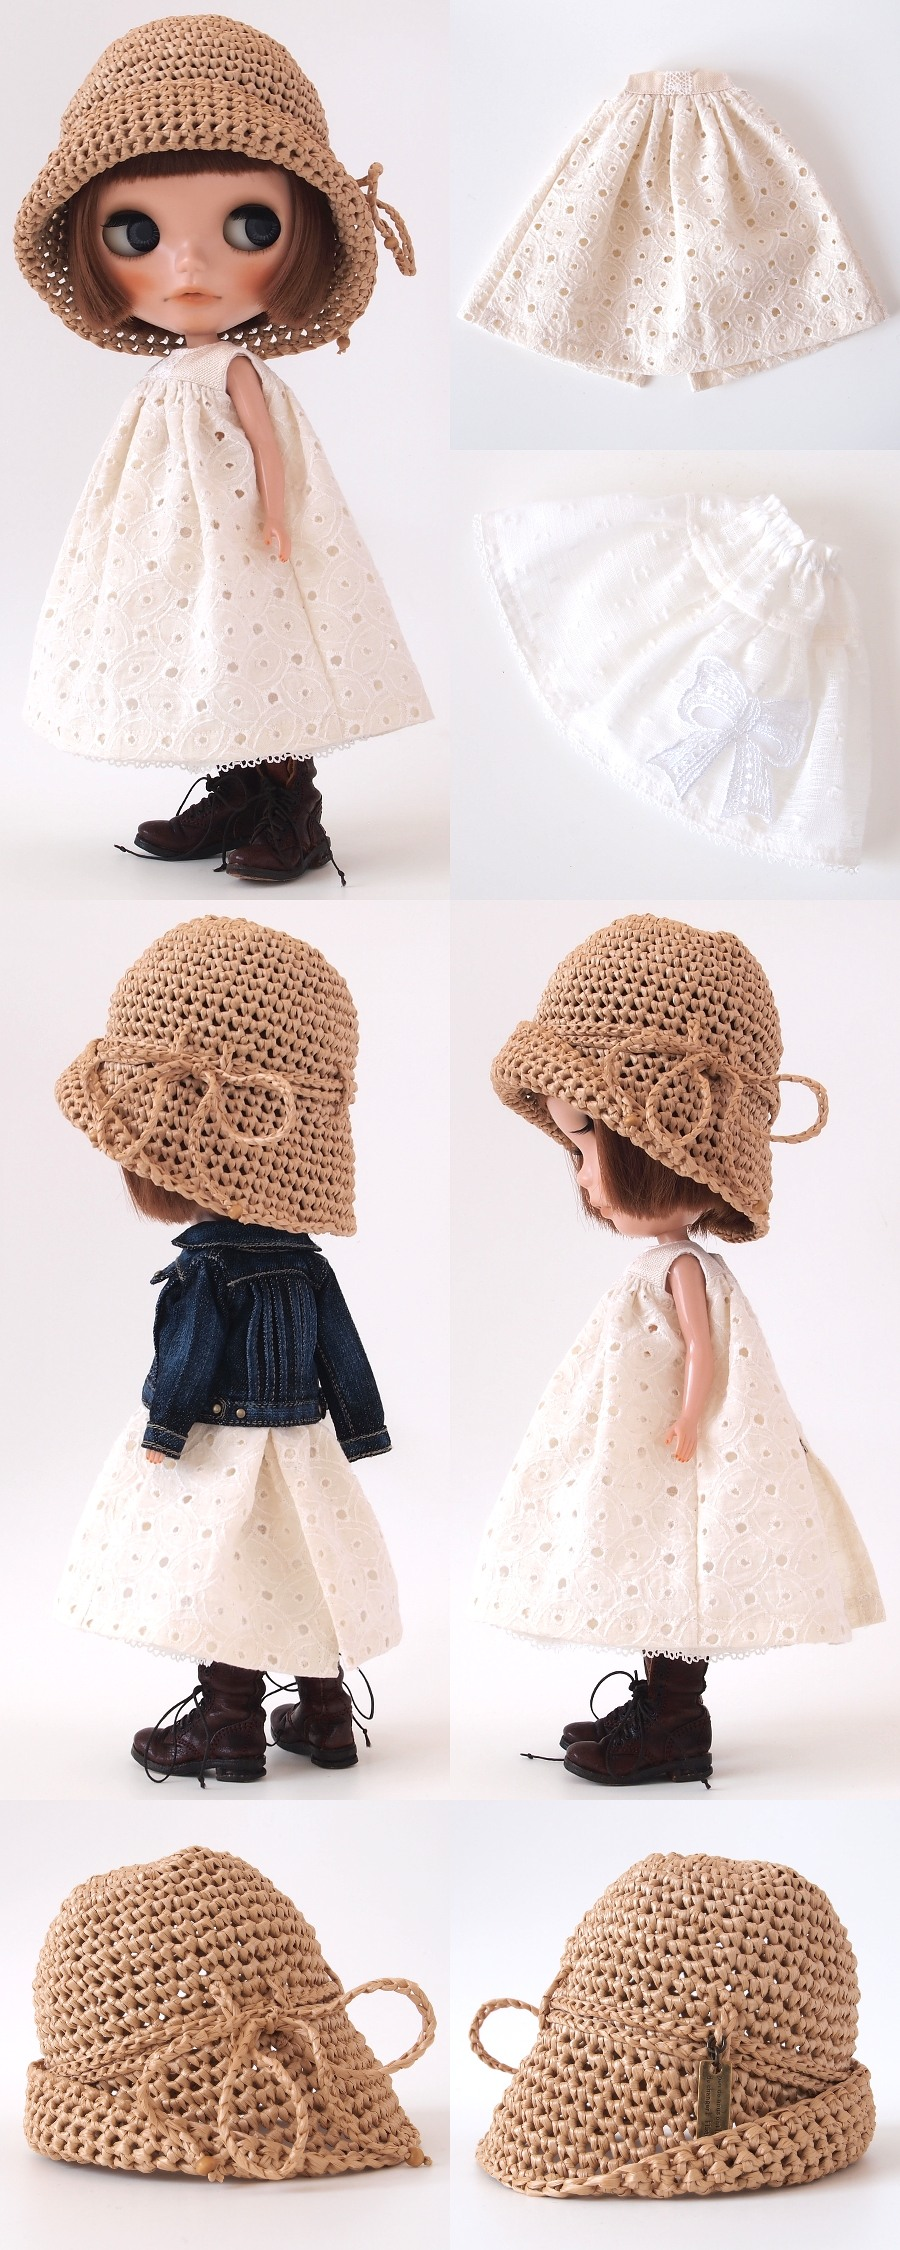 ** Blythe outfit ** Lucalily 389**_d0217189_15125742.jpg